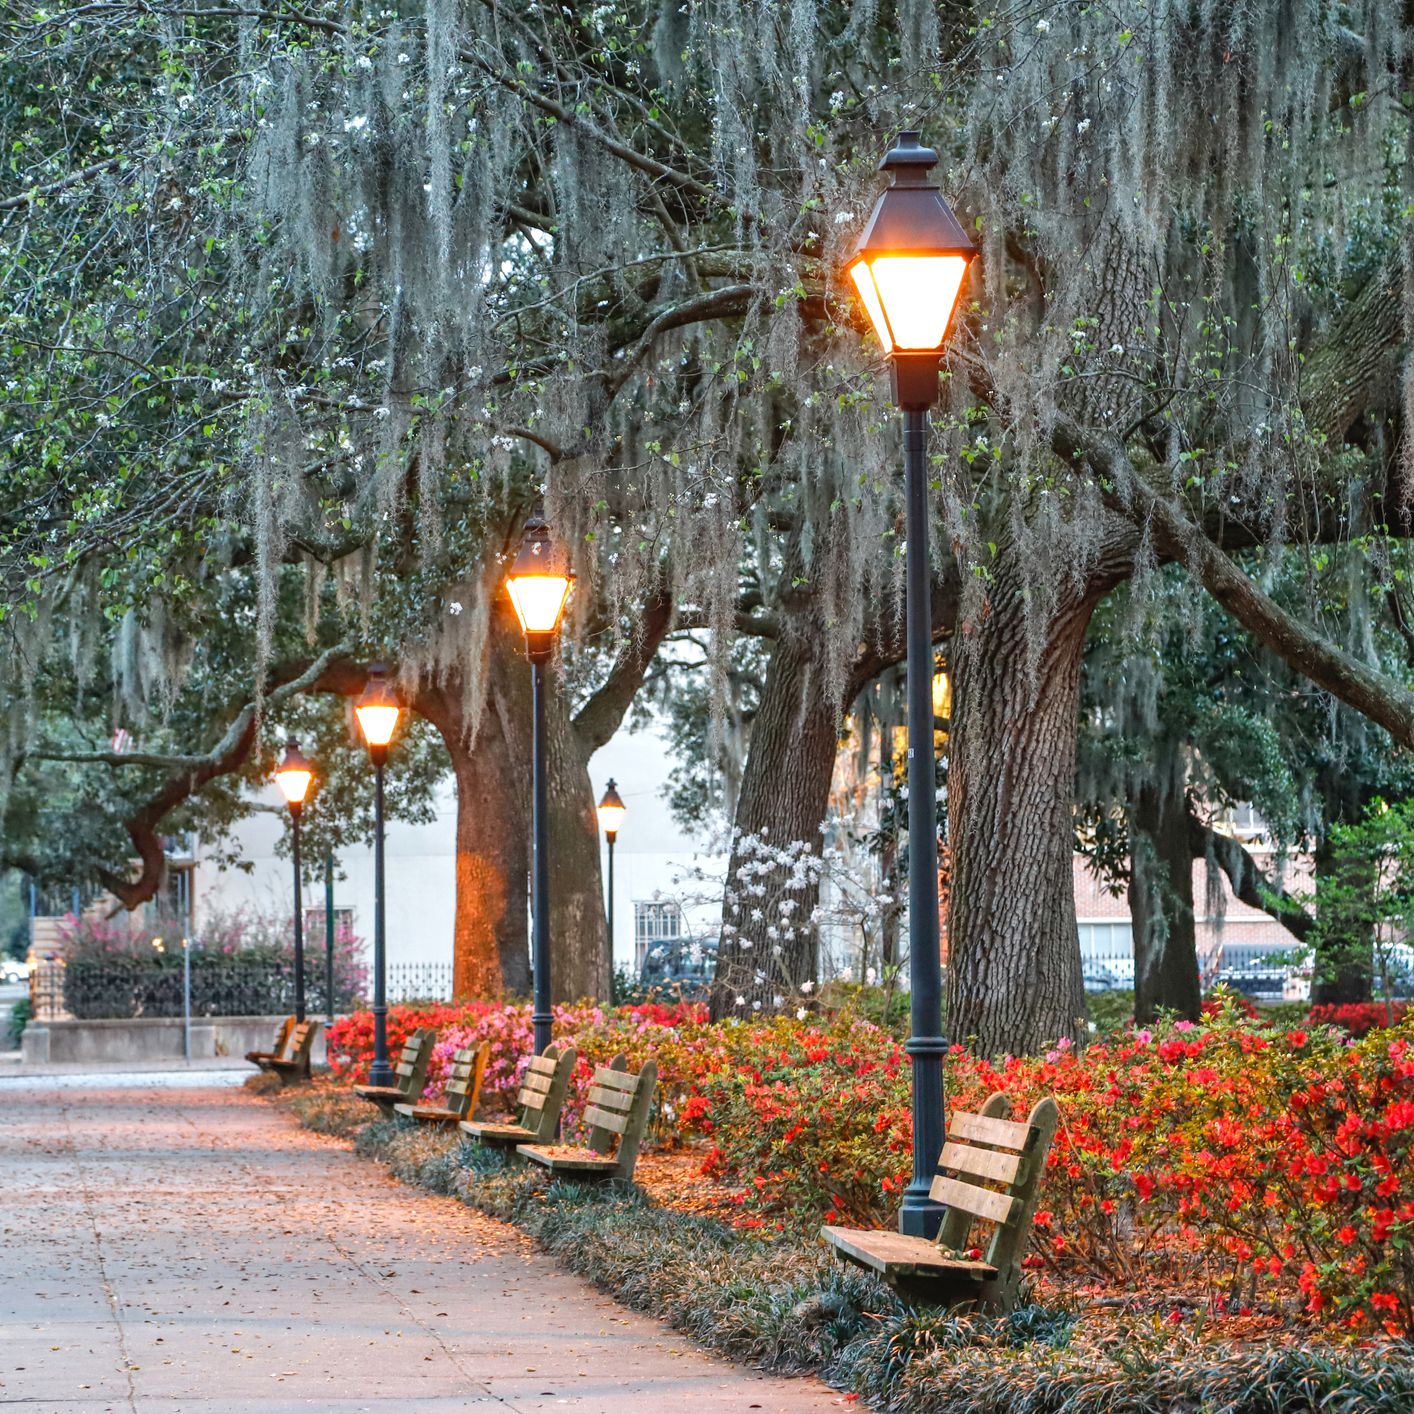 48 Hours in Savannah: The Ultimate Itinerary